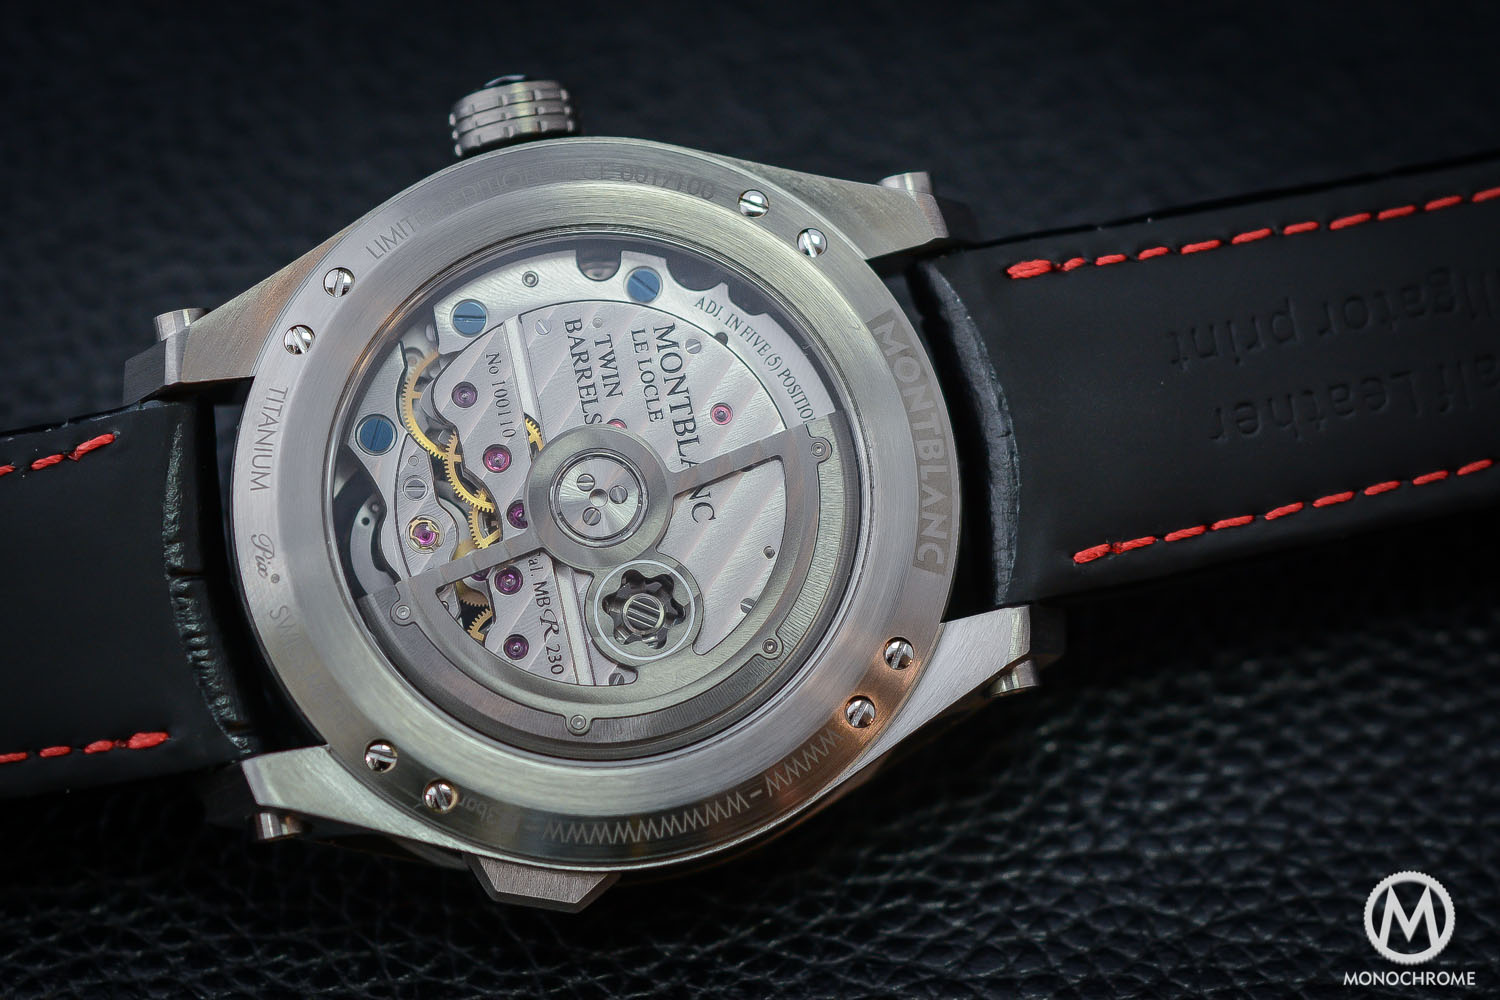 Montblanc TimeWalker ExoTourbillon Minute Chronograph LE100 movement